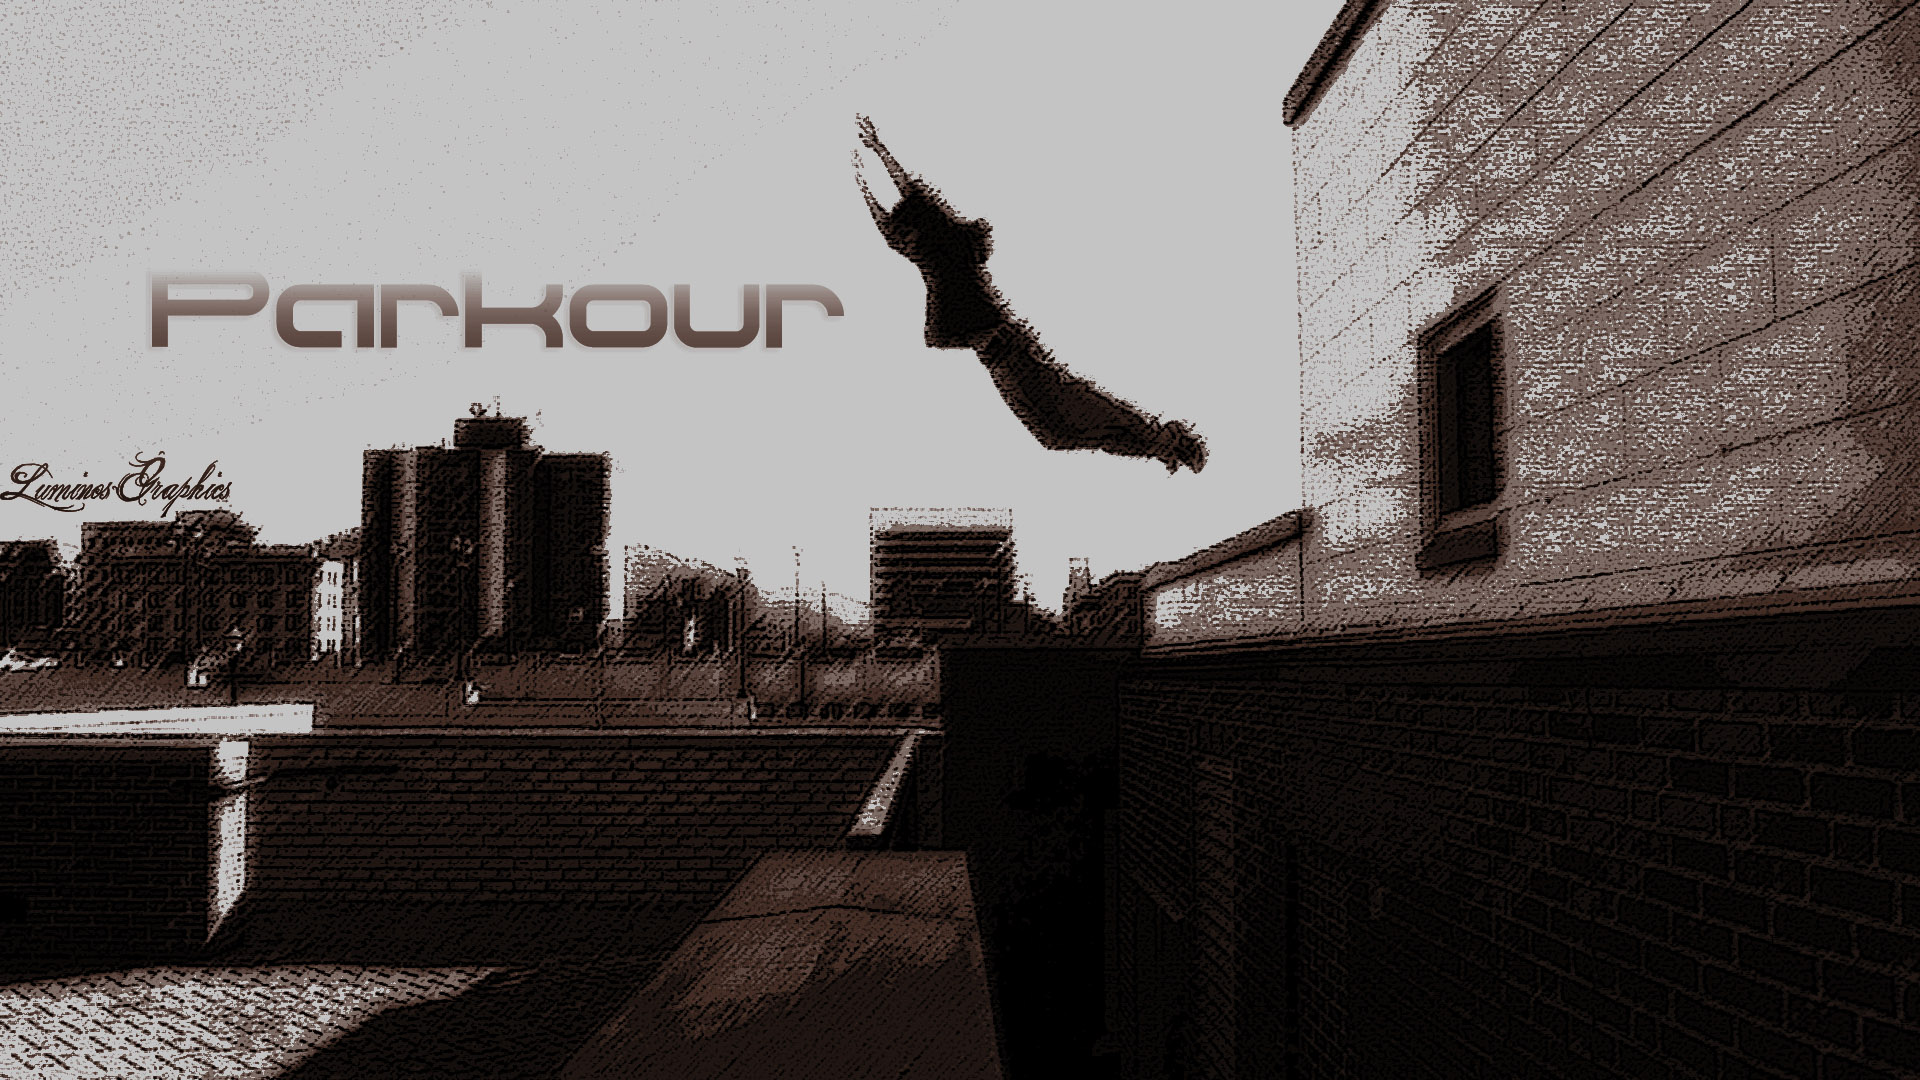 Related to WallpapersWidecom Parkour HD Desktop Wallpapers for 1920x1080